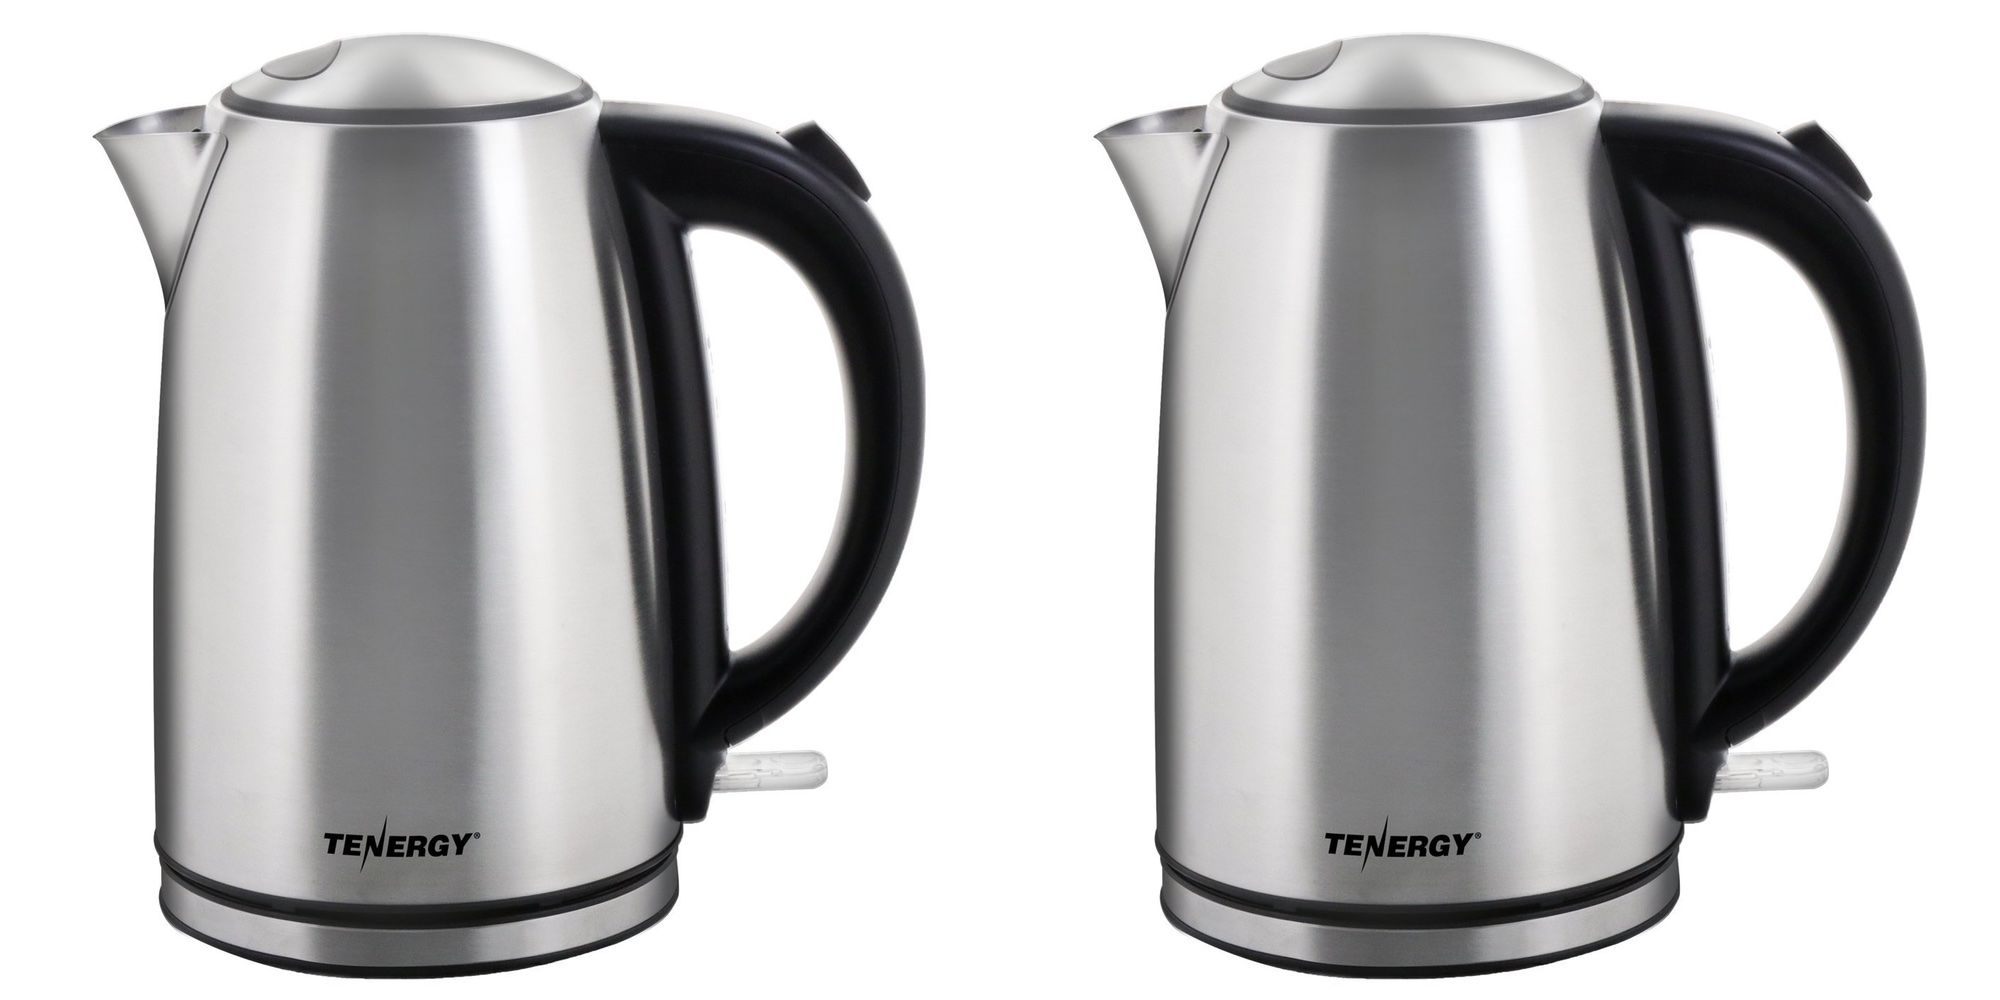 tenergy 39 s fast boiling 1500w electric kettle is down to. Black Bedroom Furniture Sets. Home Design Ideas